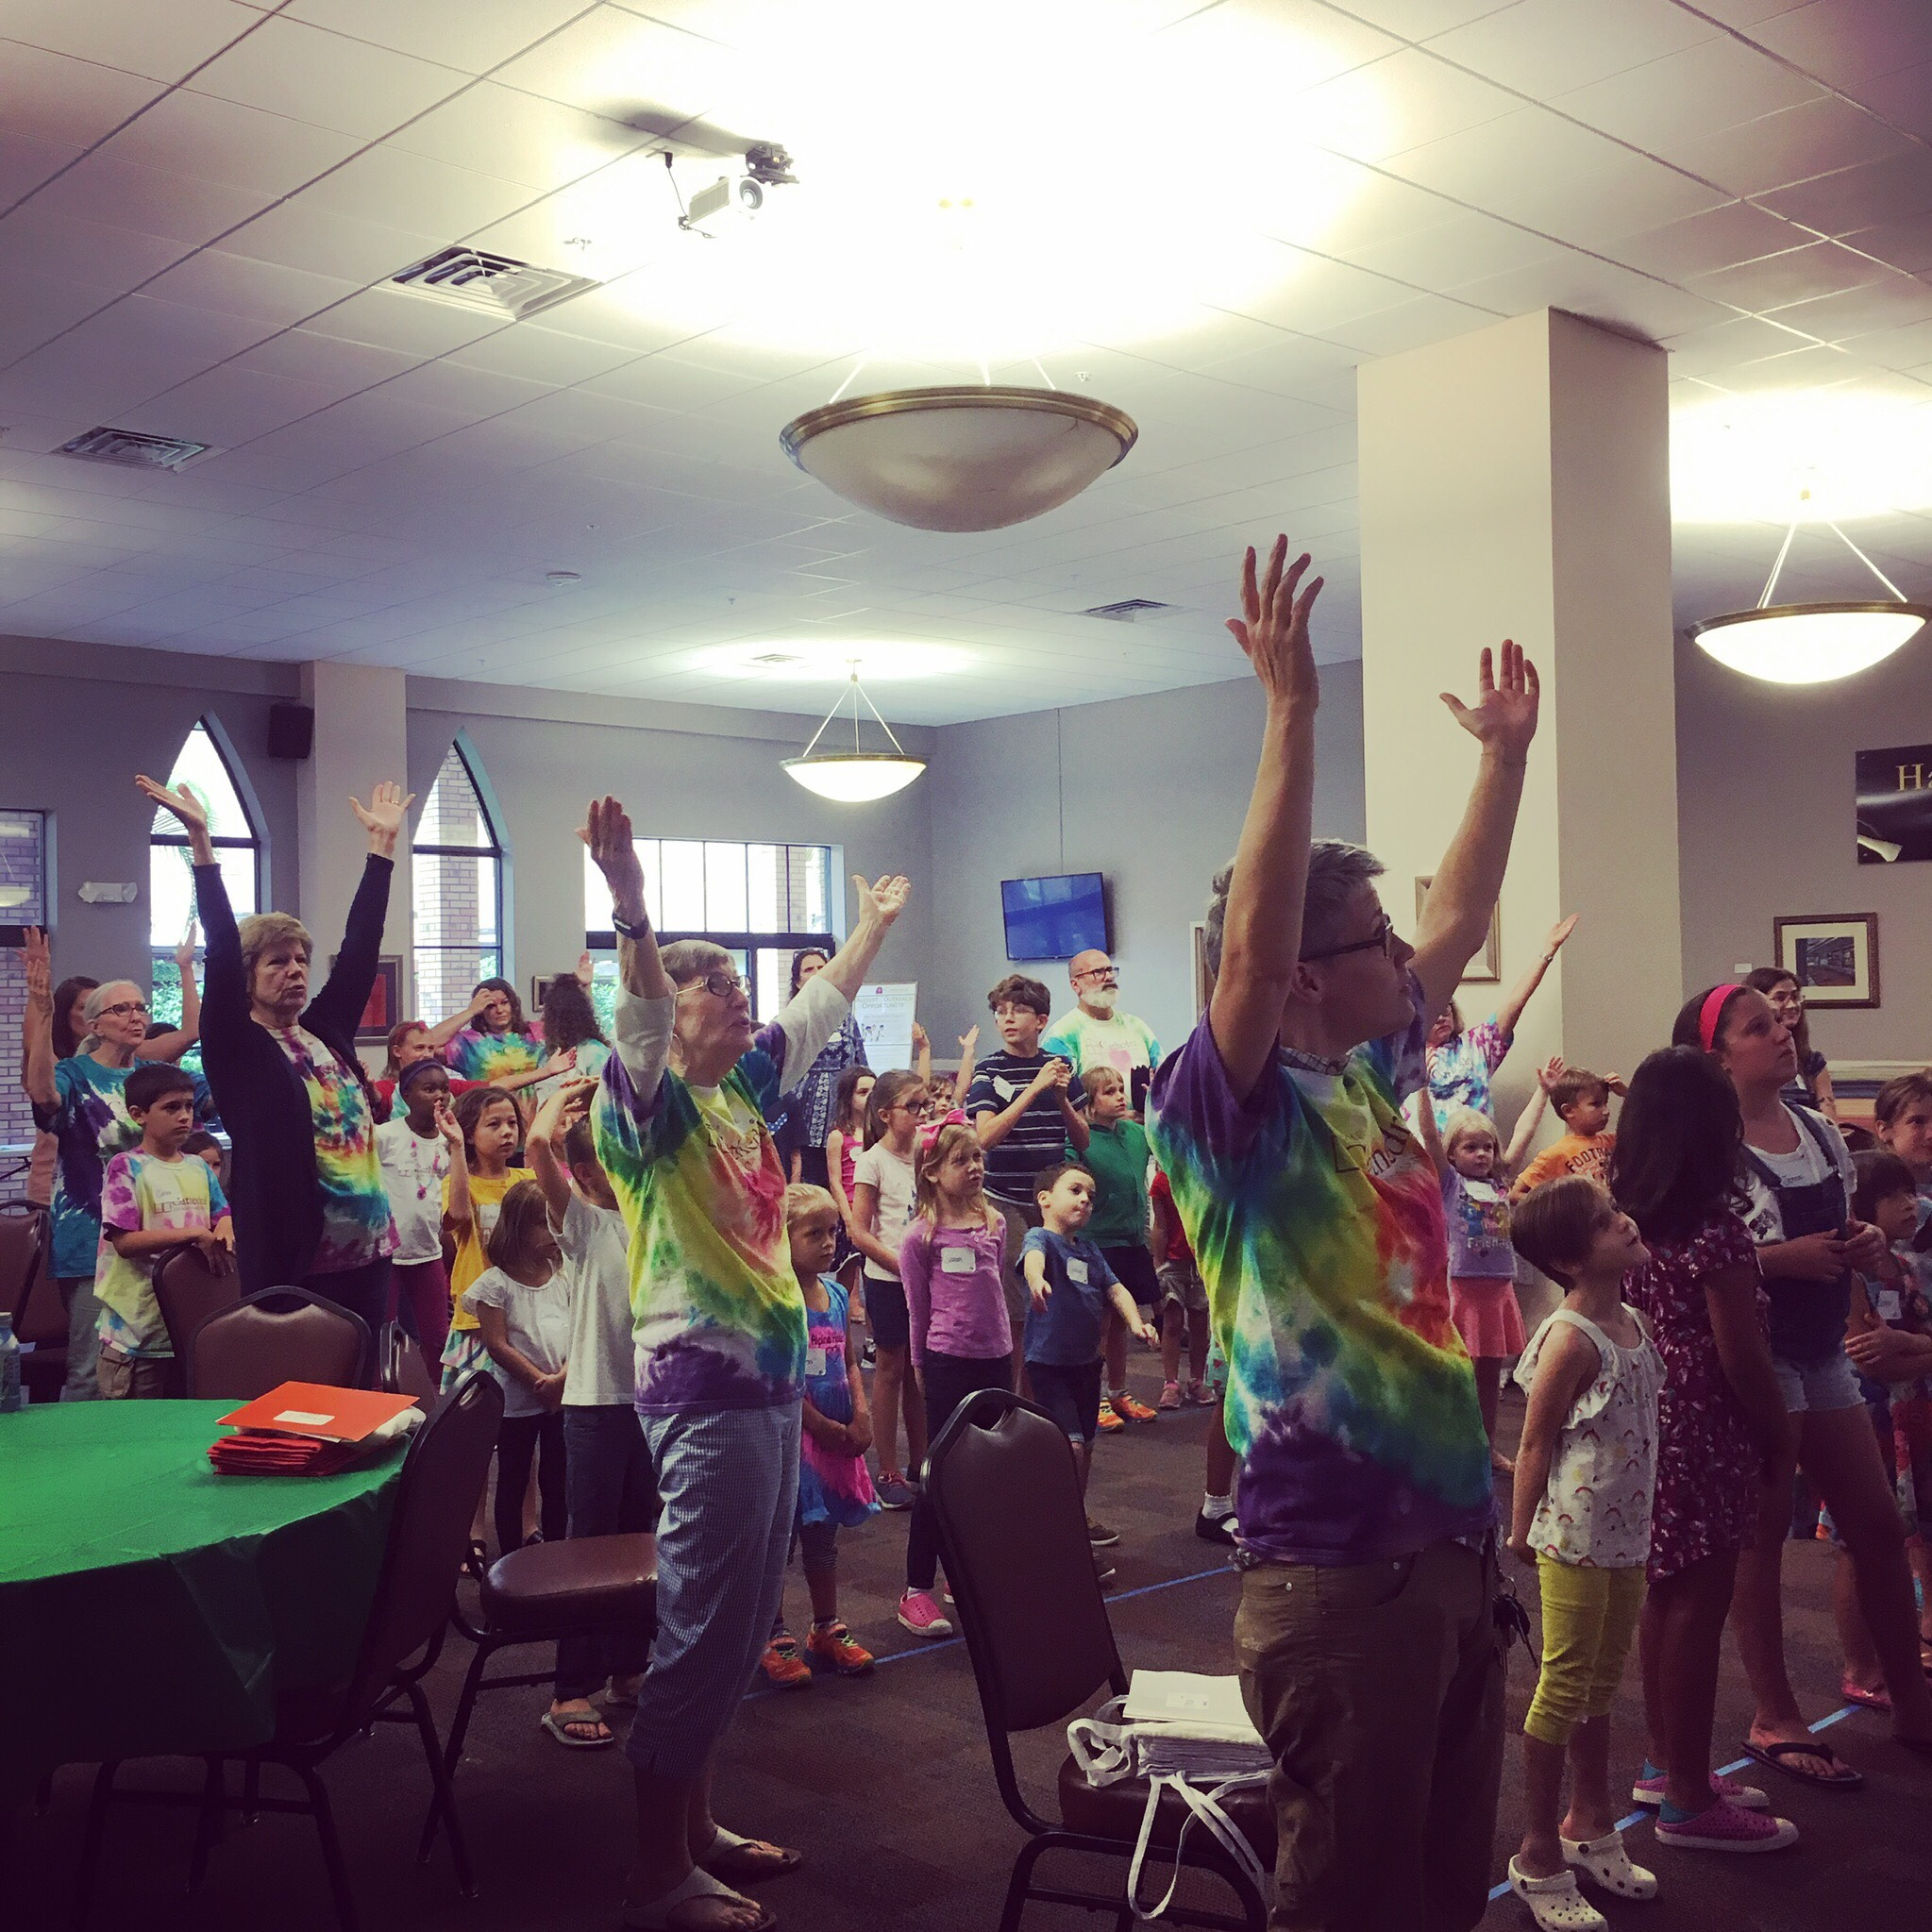 - We are so proud of our kids! We had a blast exploring all the ways we praise God through sharing our talents, remembering to say thanks, and seeing the beauty of God's creation. Here's a slideshow that captures some highlights and a video of their performance of Uyai Mose during worship on August 11. Enjoy!